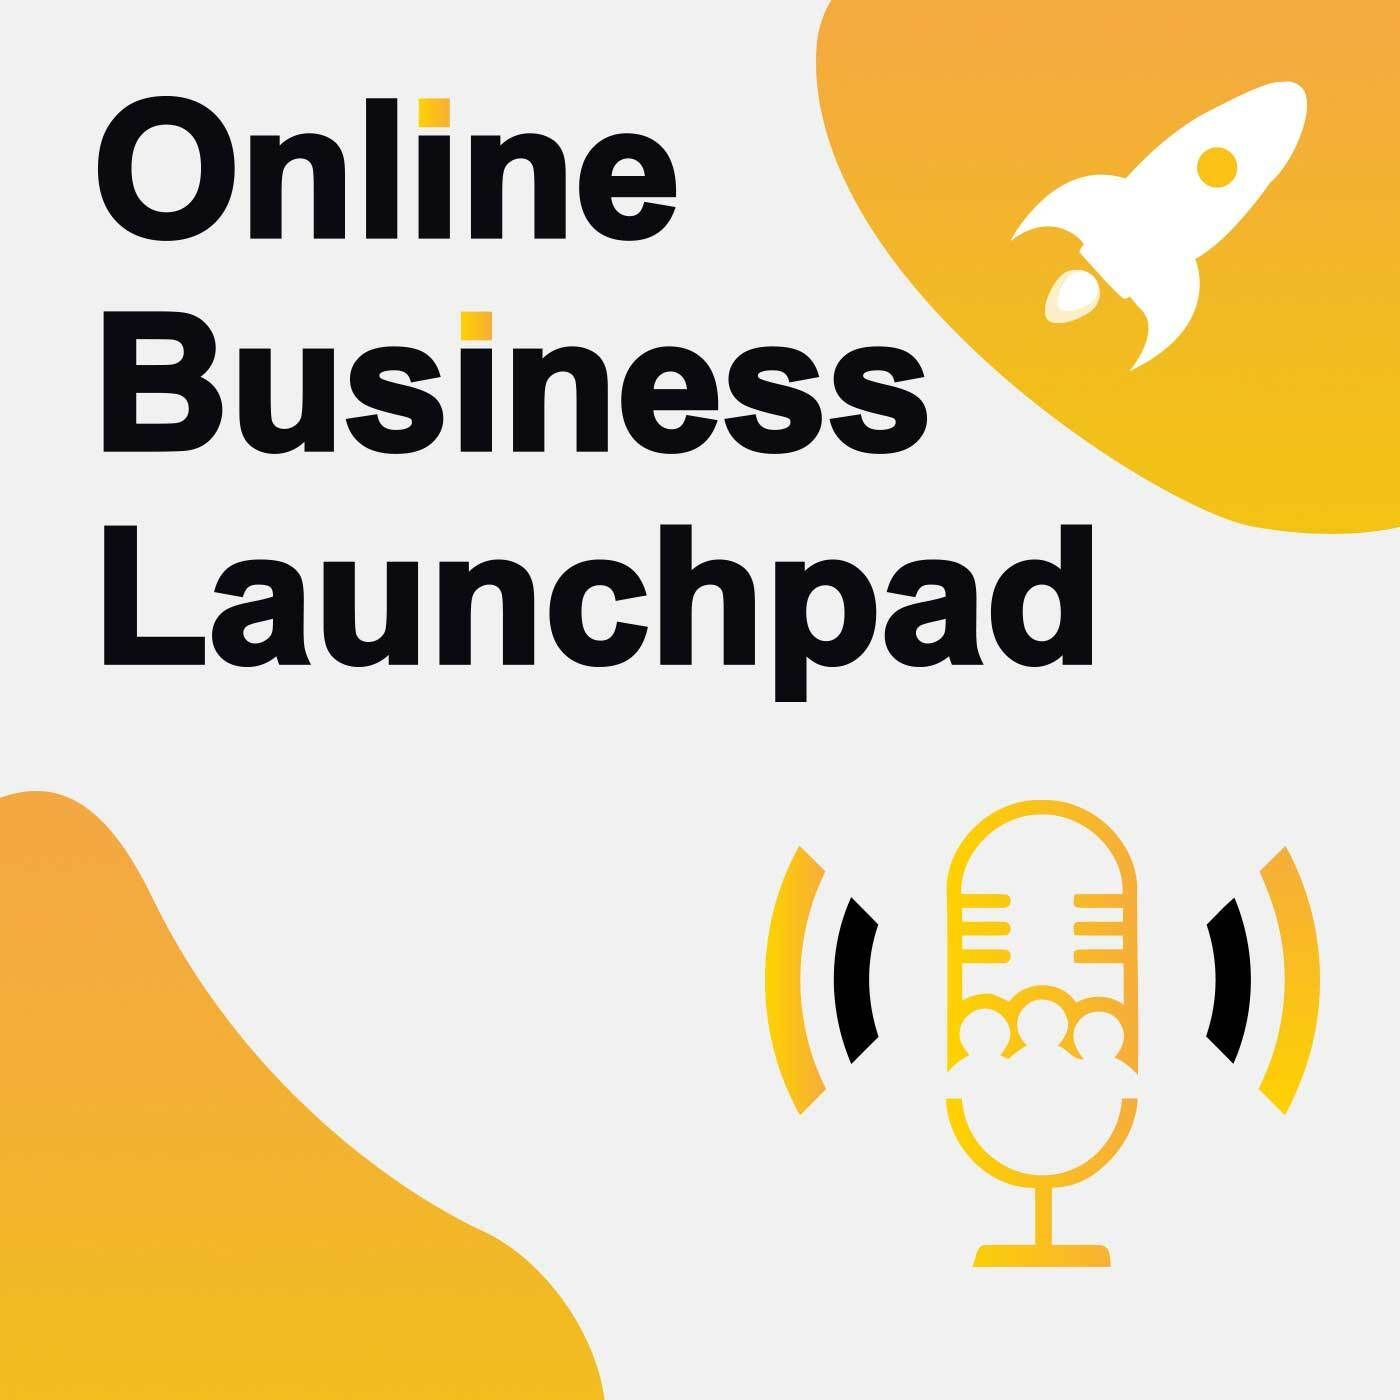 Online Business Launchpad